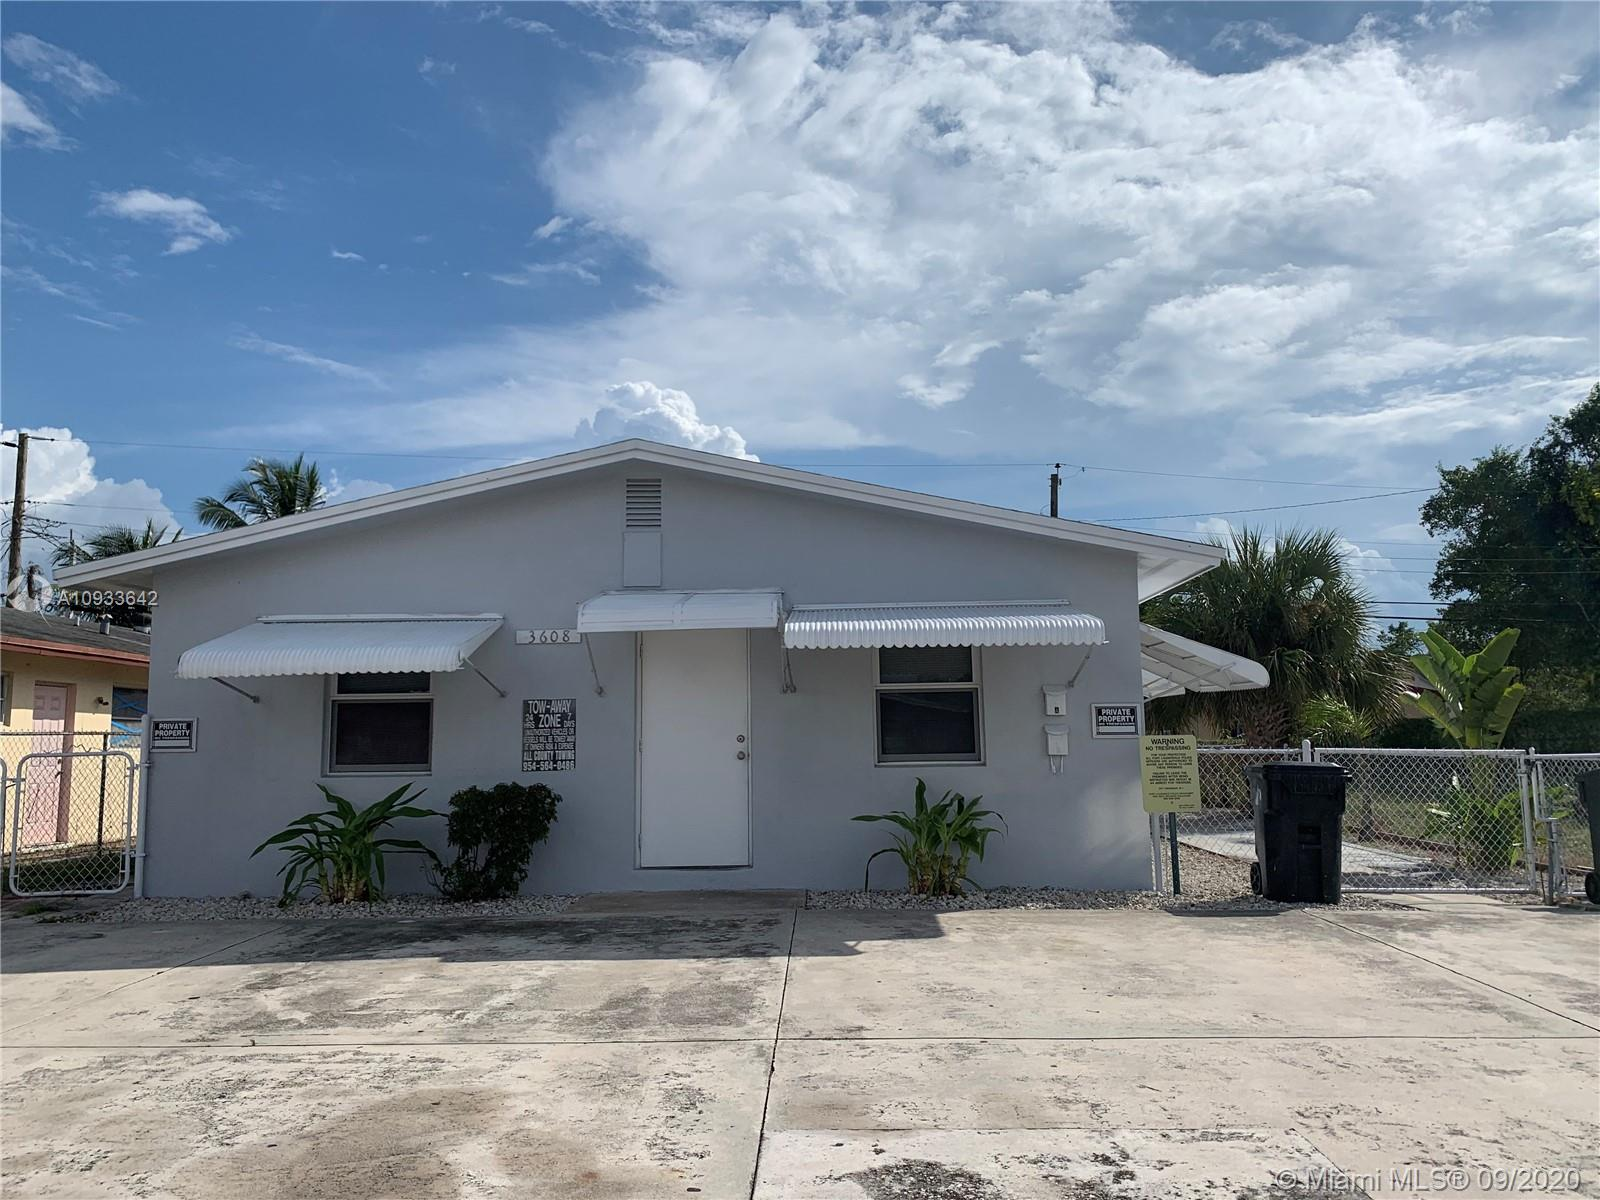 Breezyway Manor, 3608 SW 13th Ct, Fort Lauderdale, Florida 33312